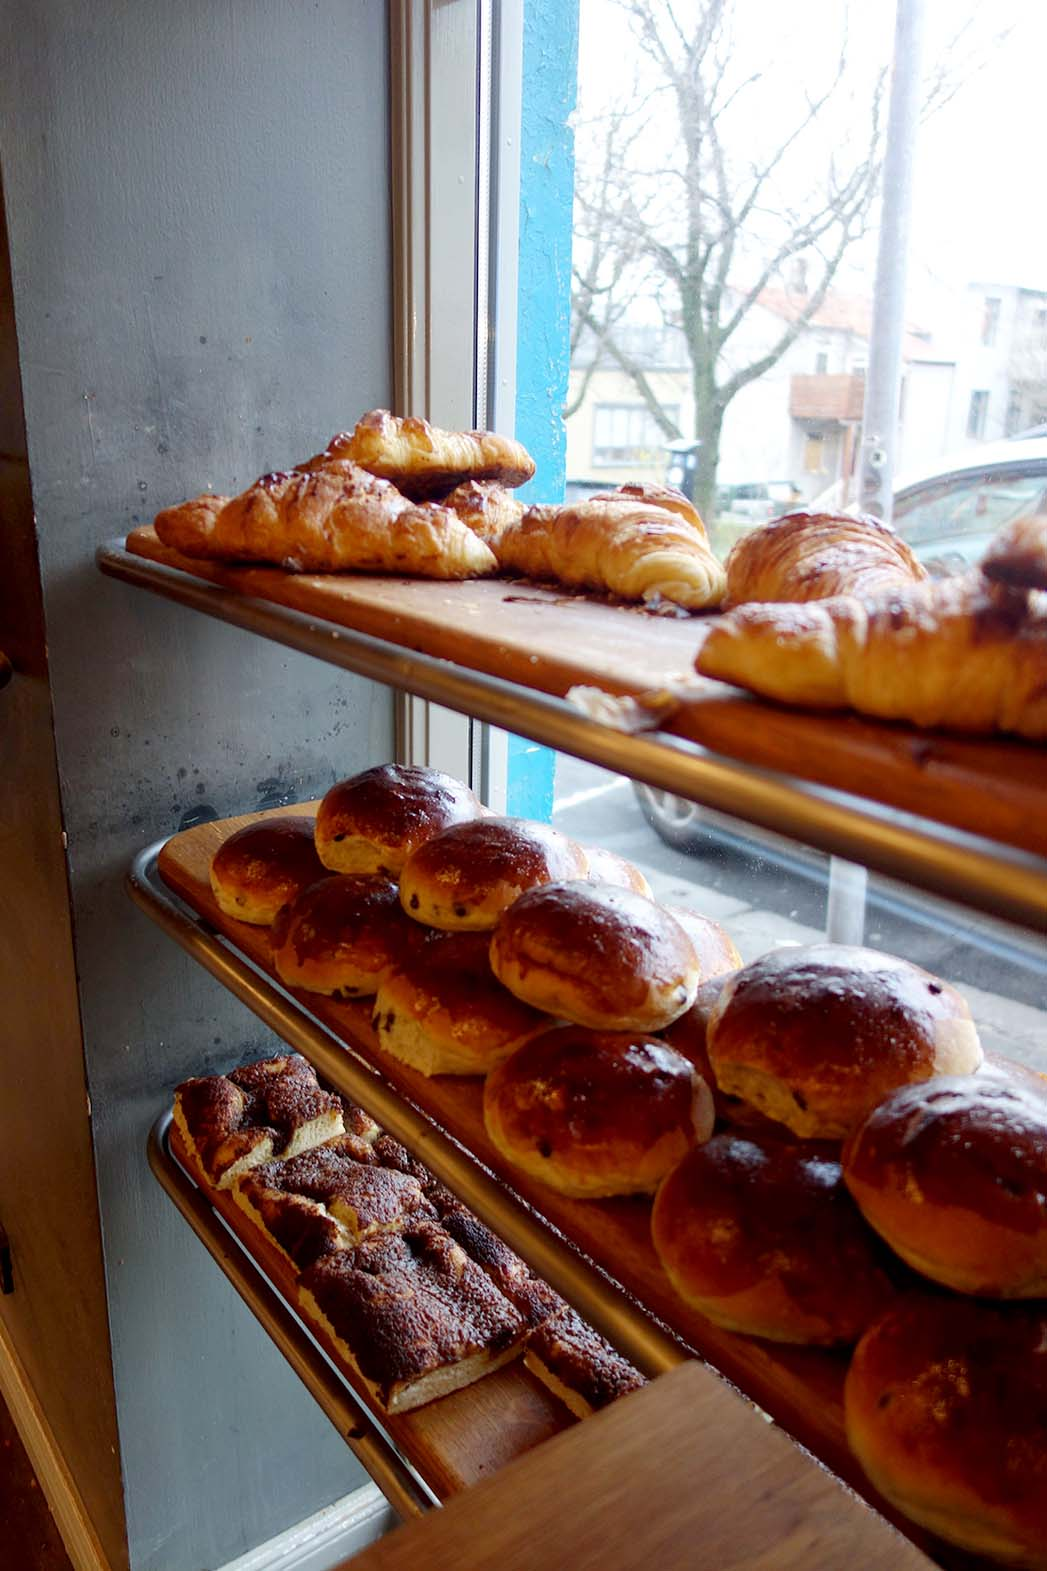 Braud & Co bakery in Iceland